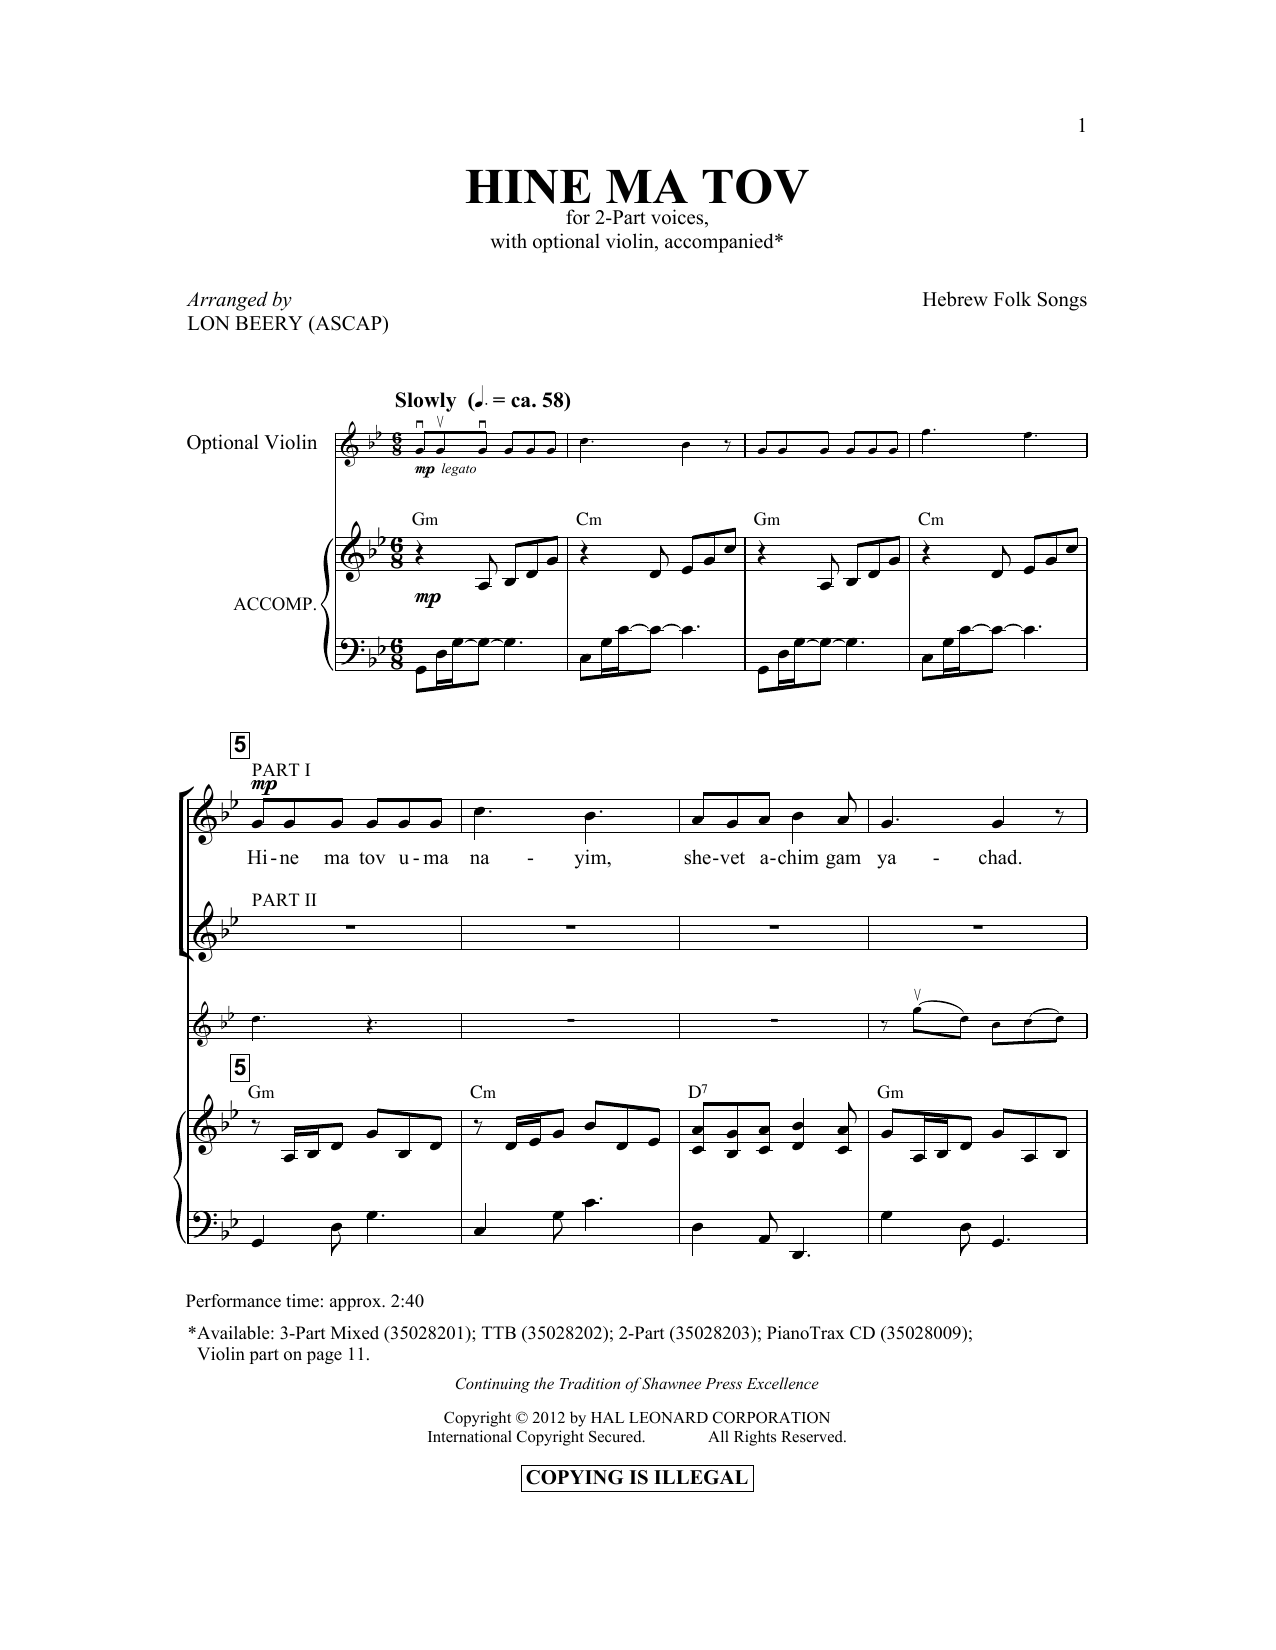 Lon Beery Hineh Ma Tov sheet music preview music notes and score for 3-Part Mixed including 10 page(s)